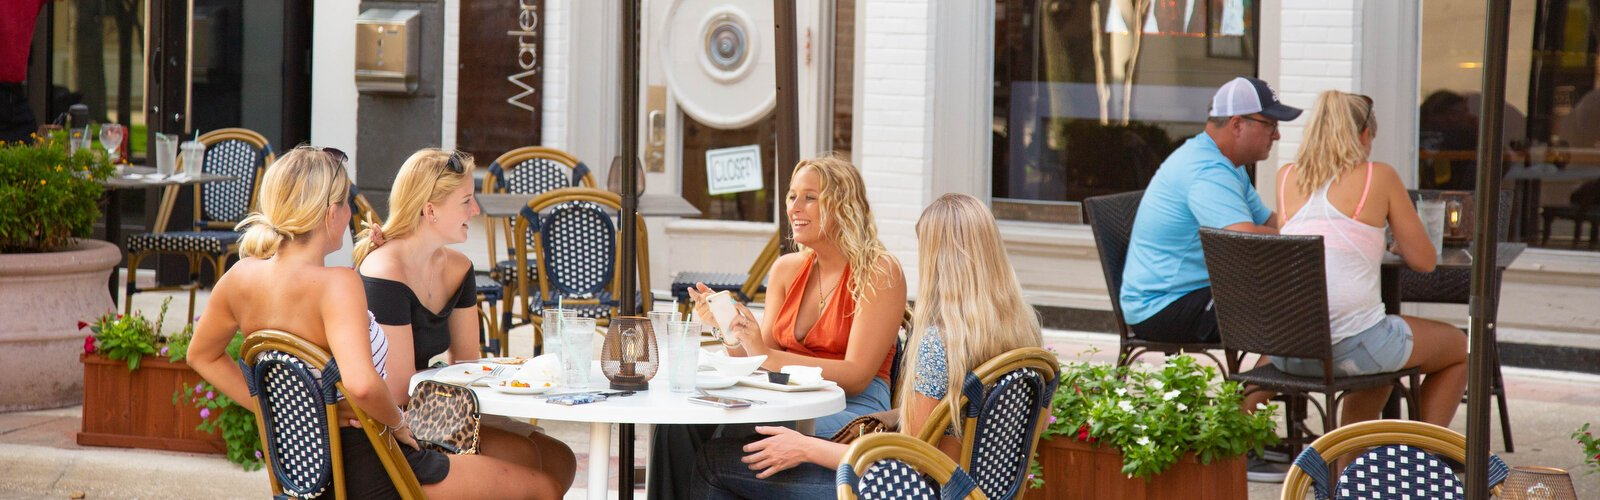 Guests dine out in downtown Clearwater where outdoor seating has been expanded, part of Clearwater's Summer 2020 Dine in Downtown Program.